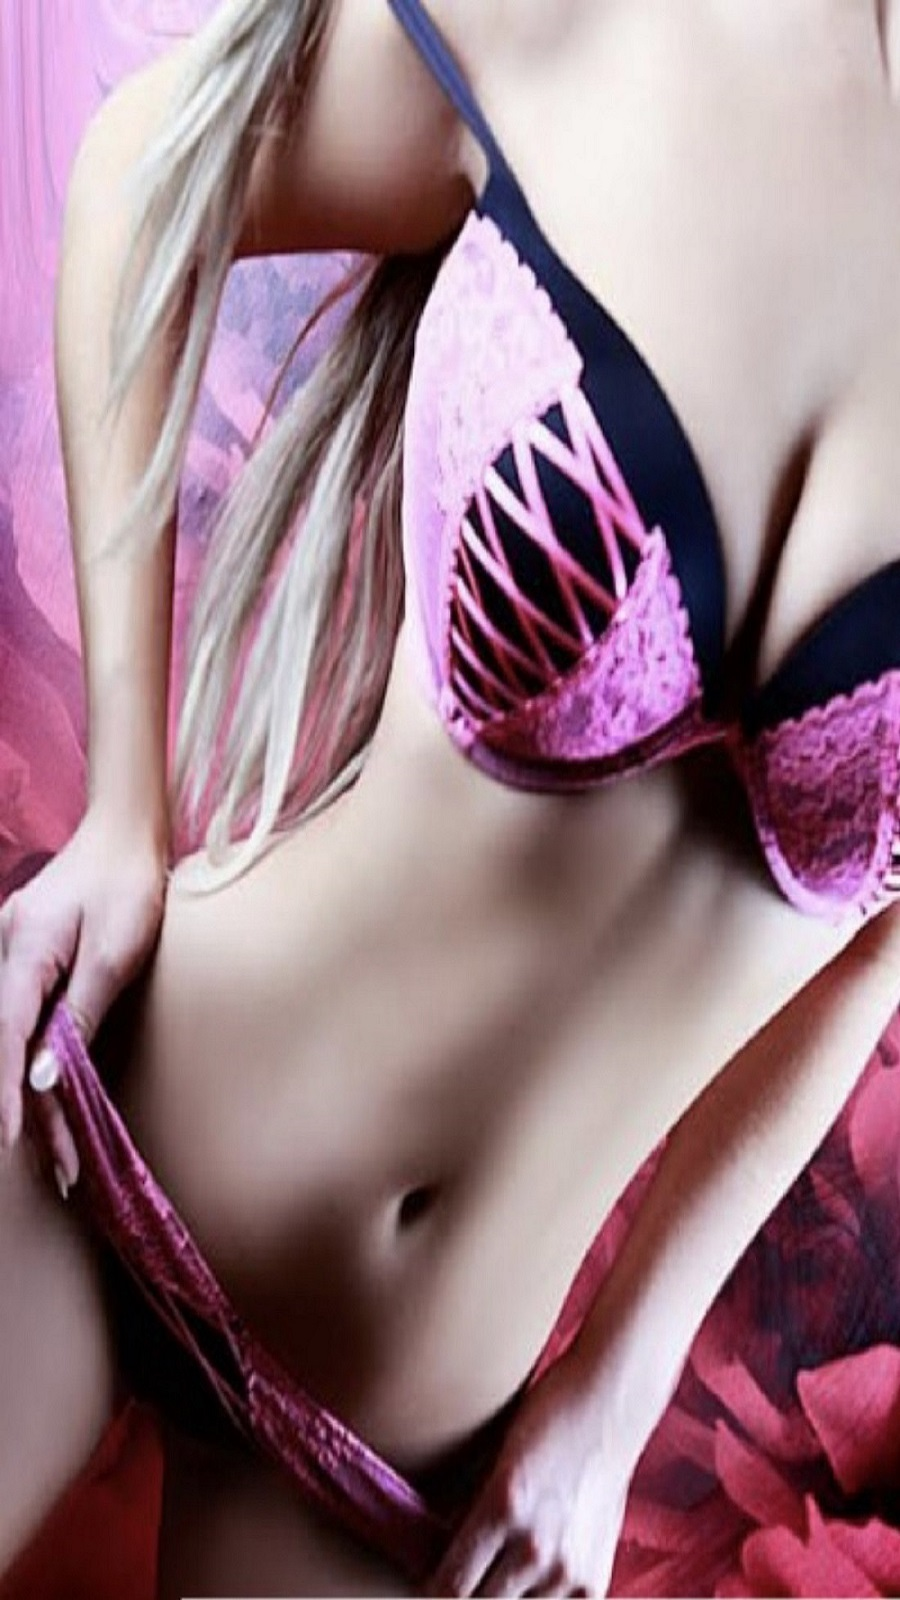 If you are looking for the perfect companion tonight give us a call on 07412621234 to book Katie for the best night of your life.